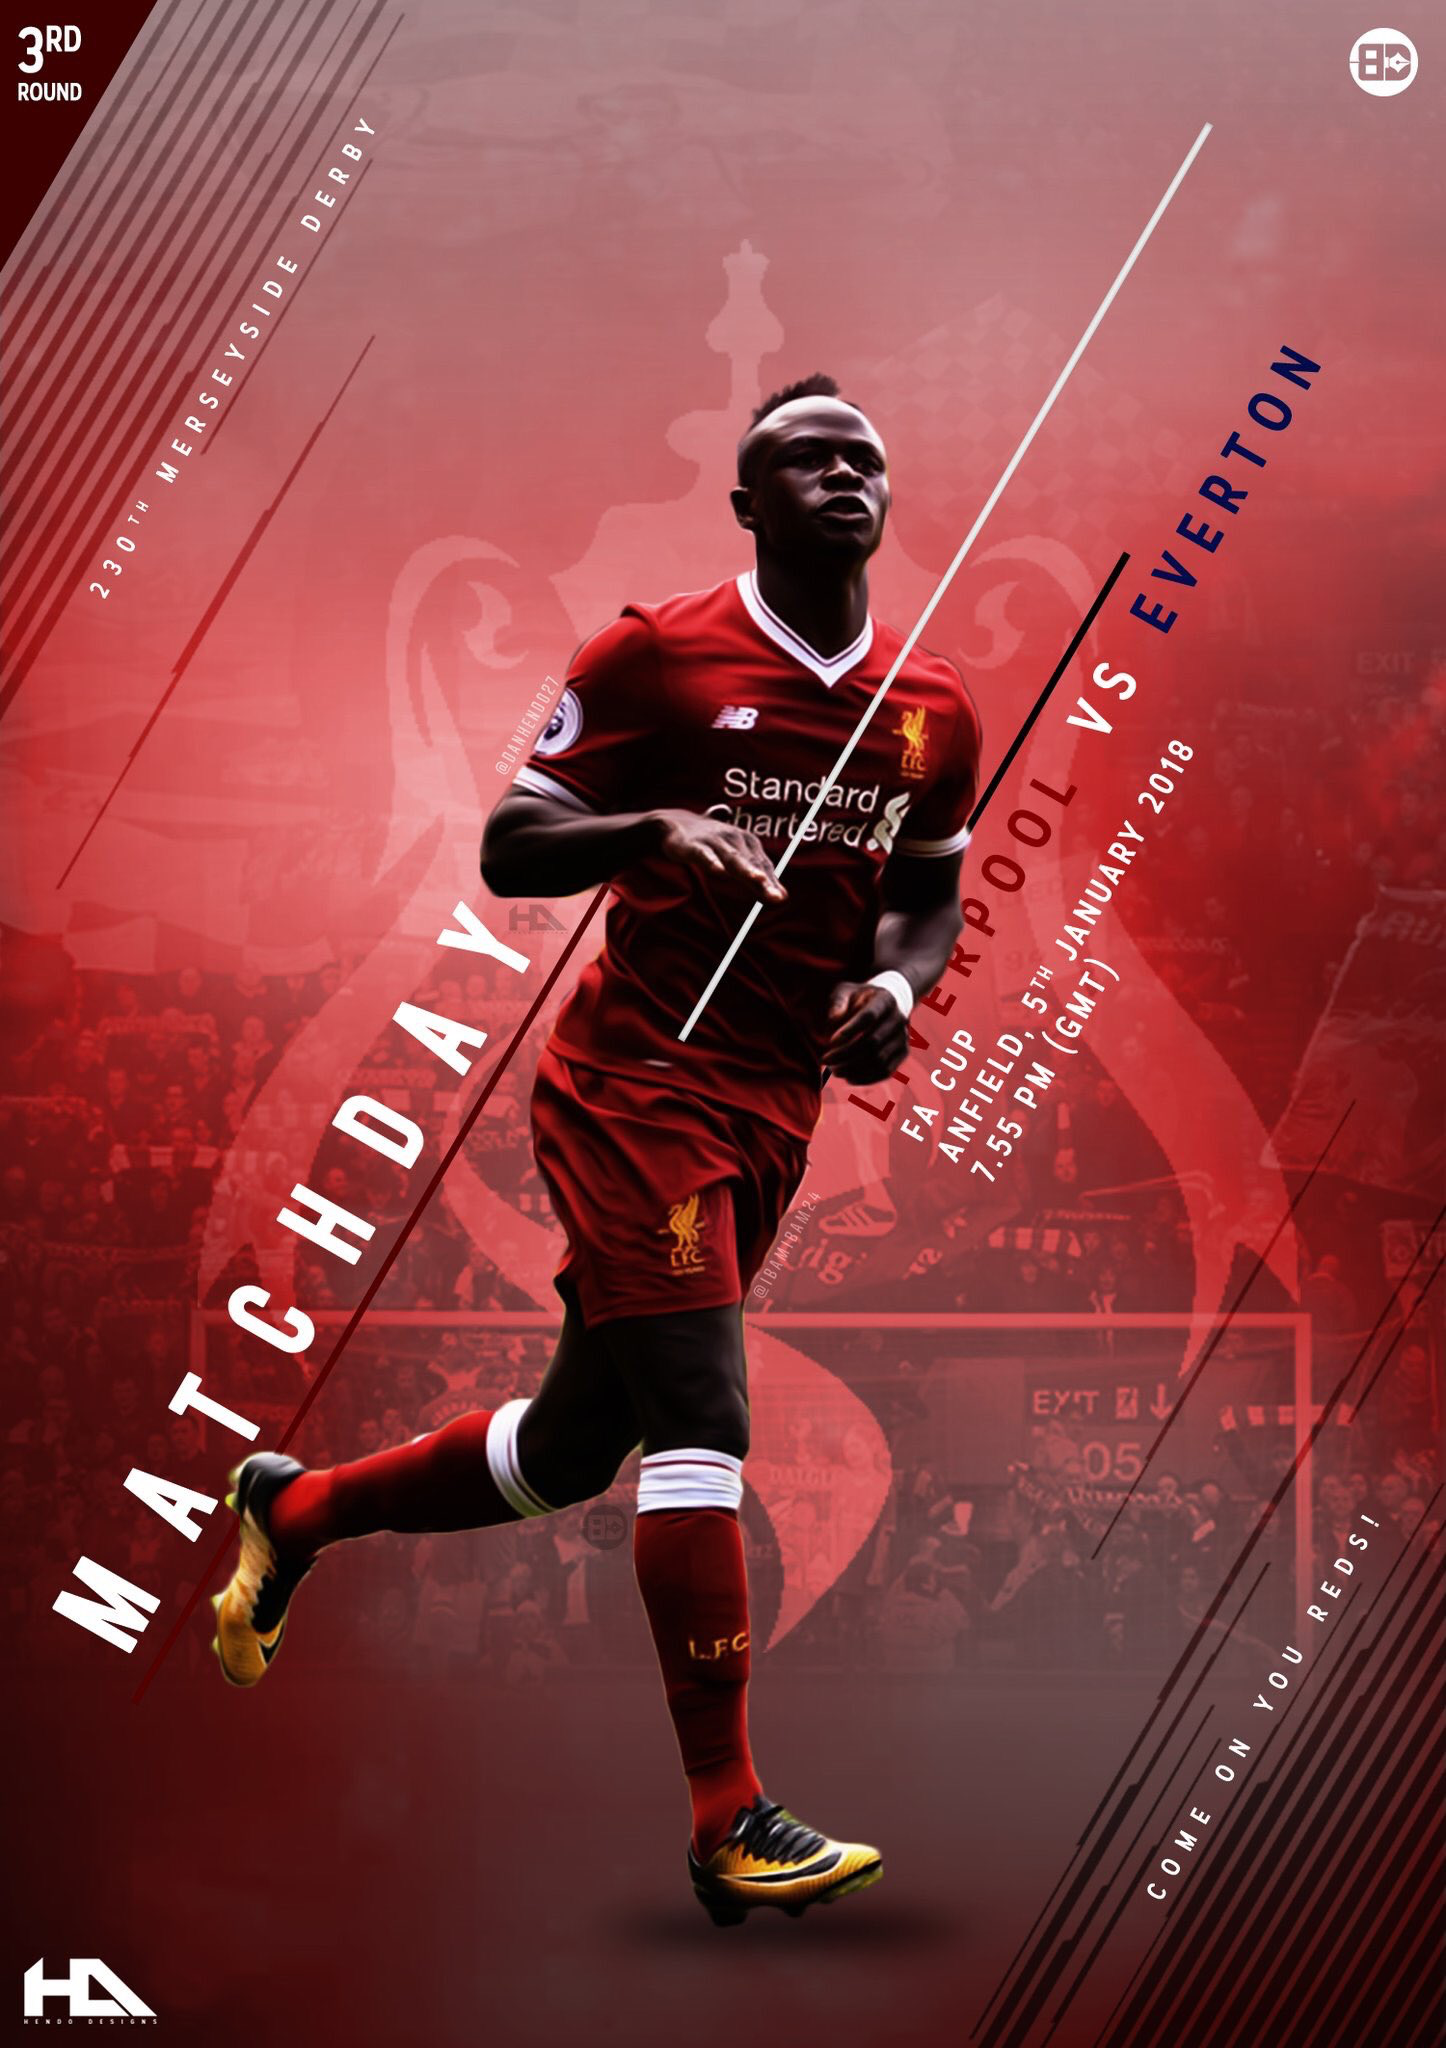 Pin by Sandipan on Digital Agency | Sports graphic design ...